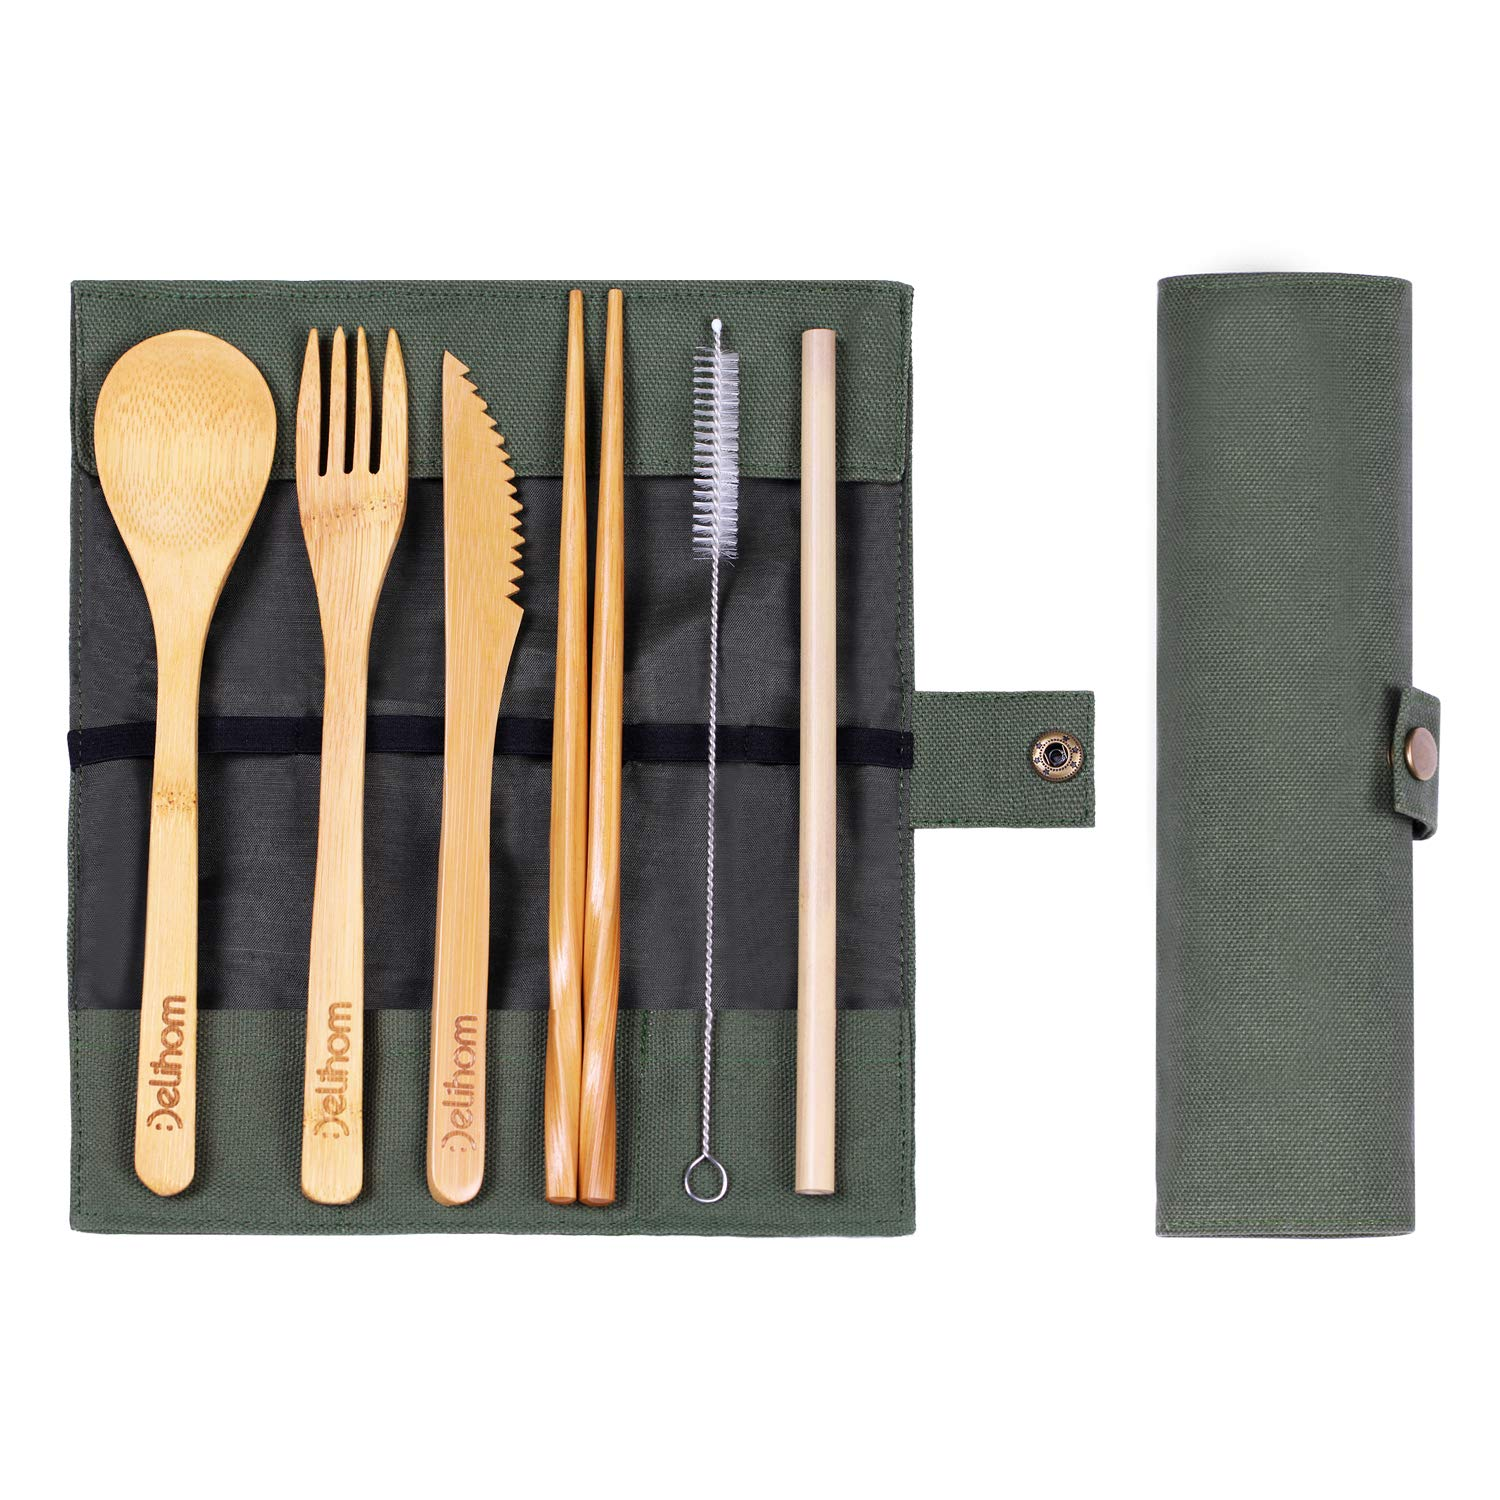 Delihom Bamboo Travel Cutlery Set, Eco Friendly Kids Flatware with Straw, Organic Bamboo Utensils with Cotton Pouch for Camping, Picnic, Office, School